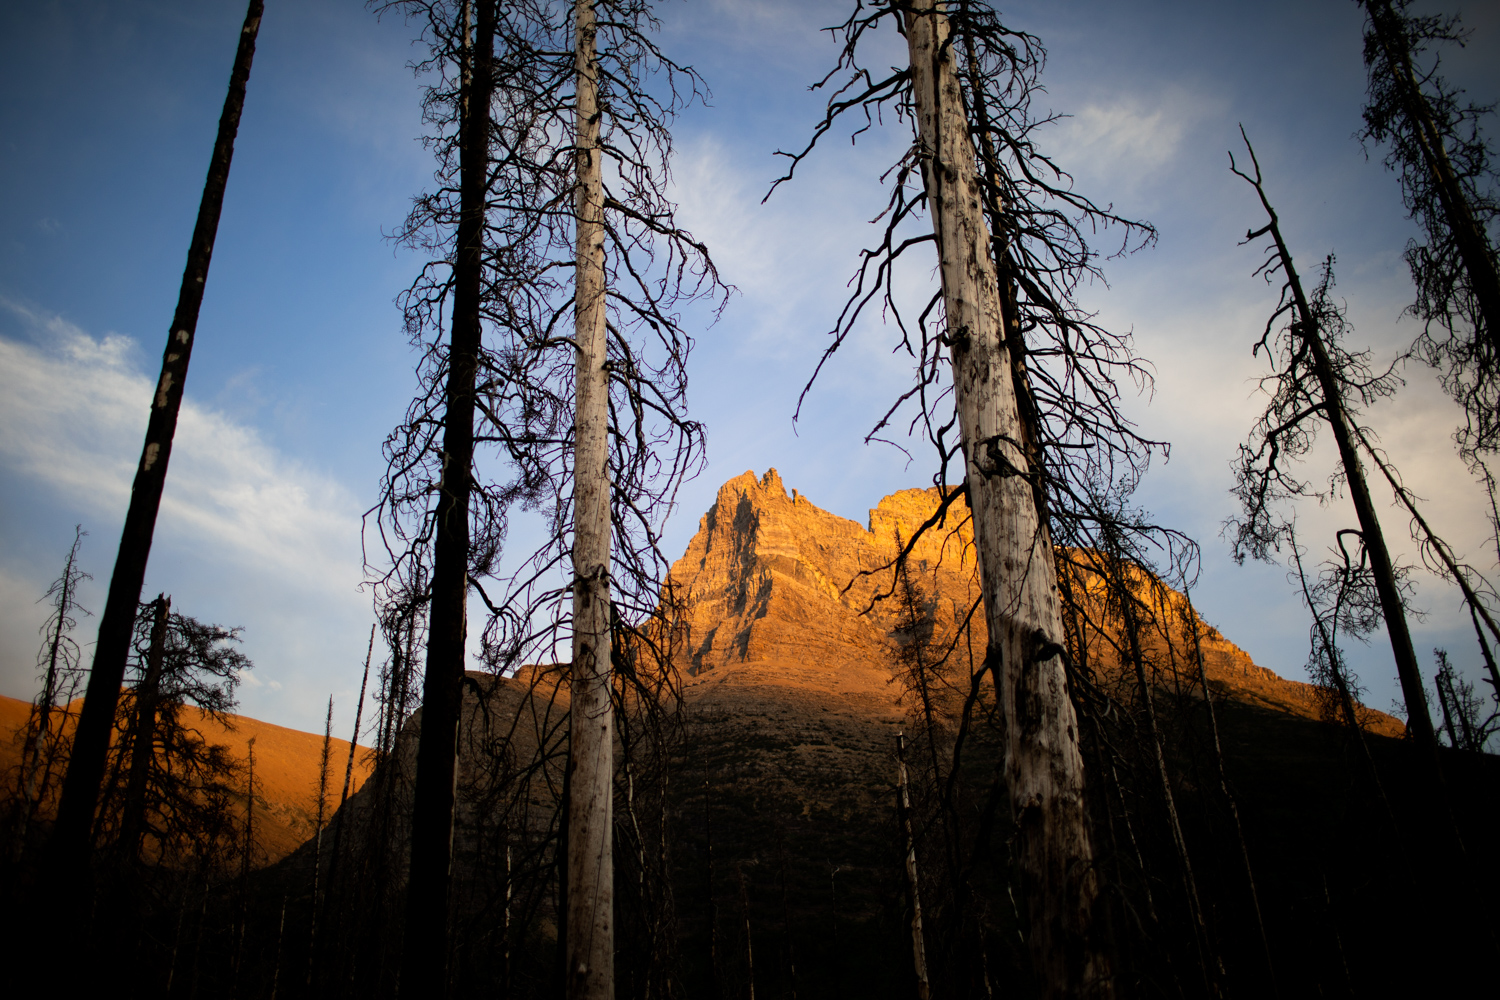 Golden light. Trees are charred from a fire that burned through this section of Glacier National Park in 2015.